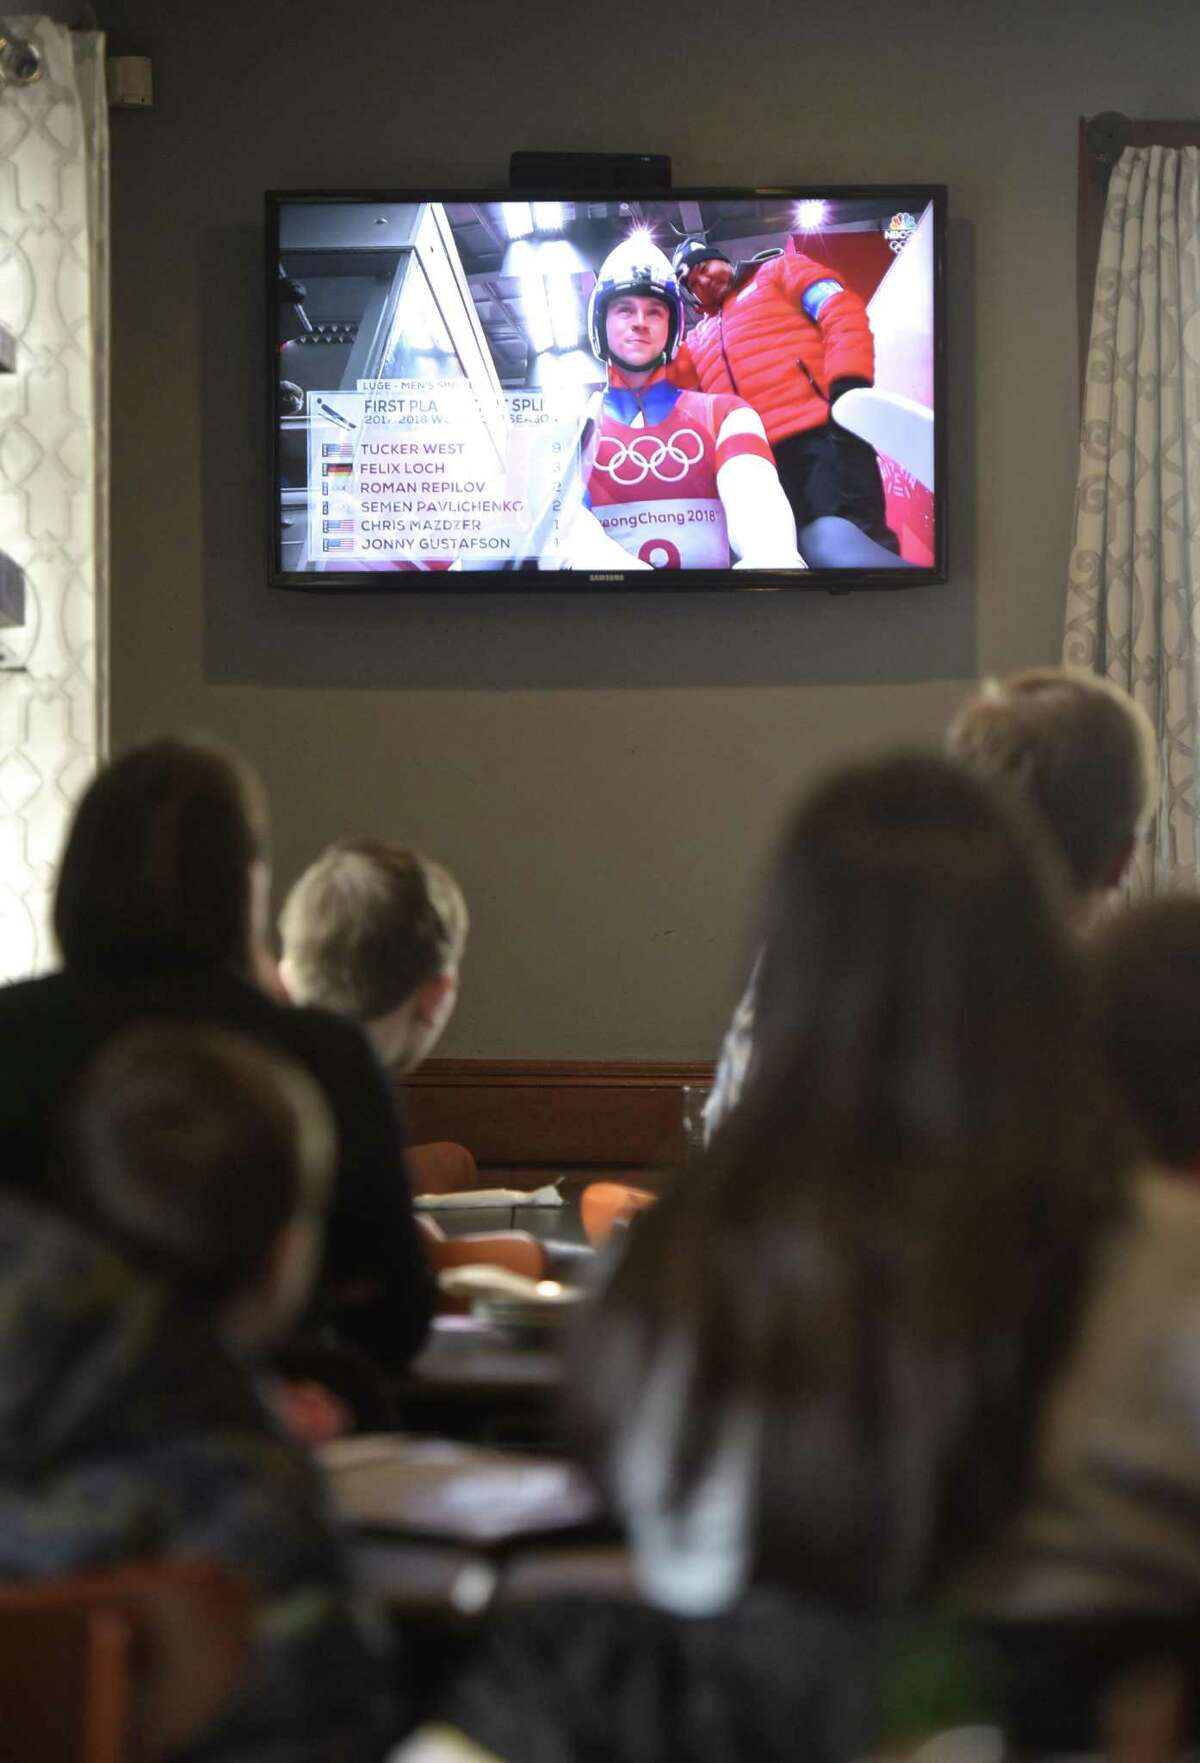 Diners watch Ridgefield Olympian Tucker West compete in the men's luge at the 2018 PyeongChang Olympic Games, South Korea, at the Tigers Den Sports Bar and Grill in Ridgefield, Conn, on Saturday, February 10, 2018.